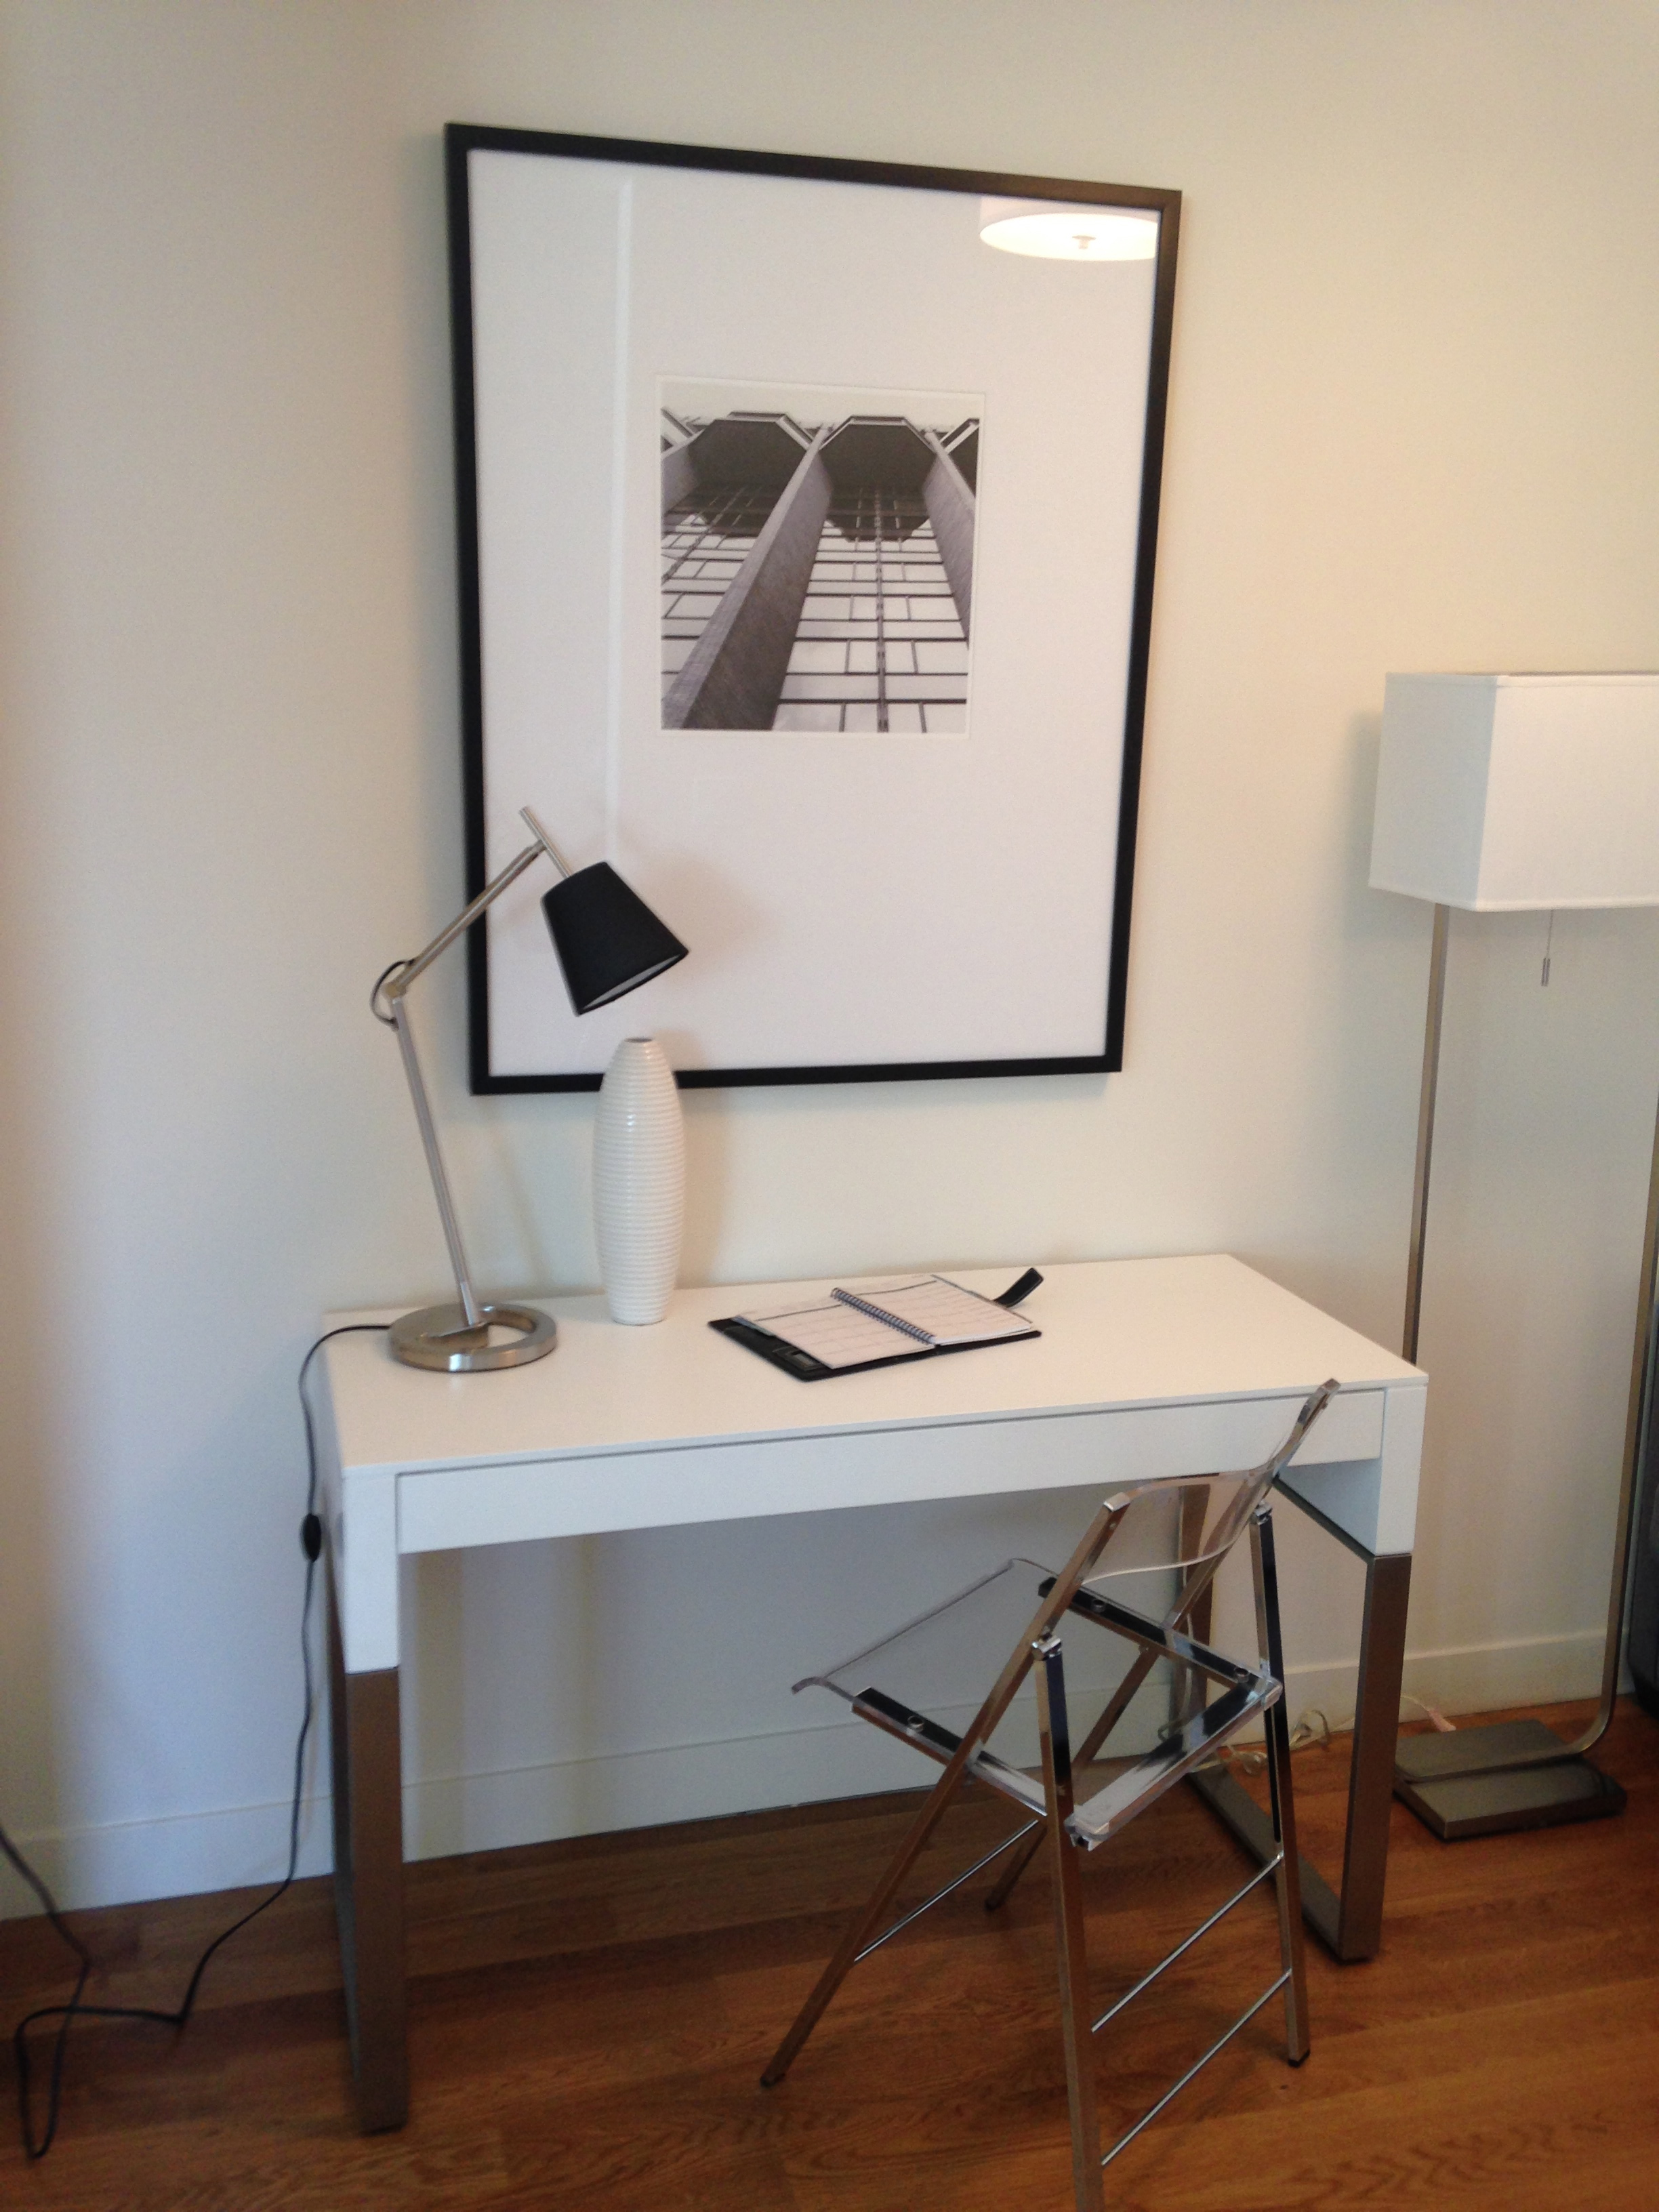 At home offices, ideas for at home offices, inspiration for black and white home offices